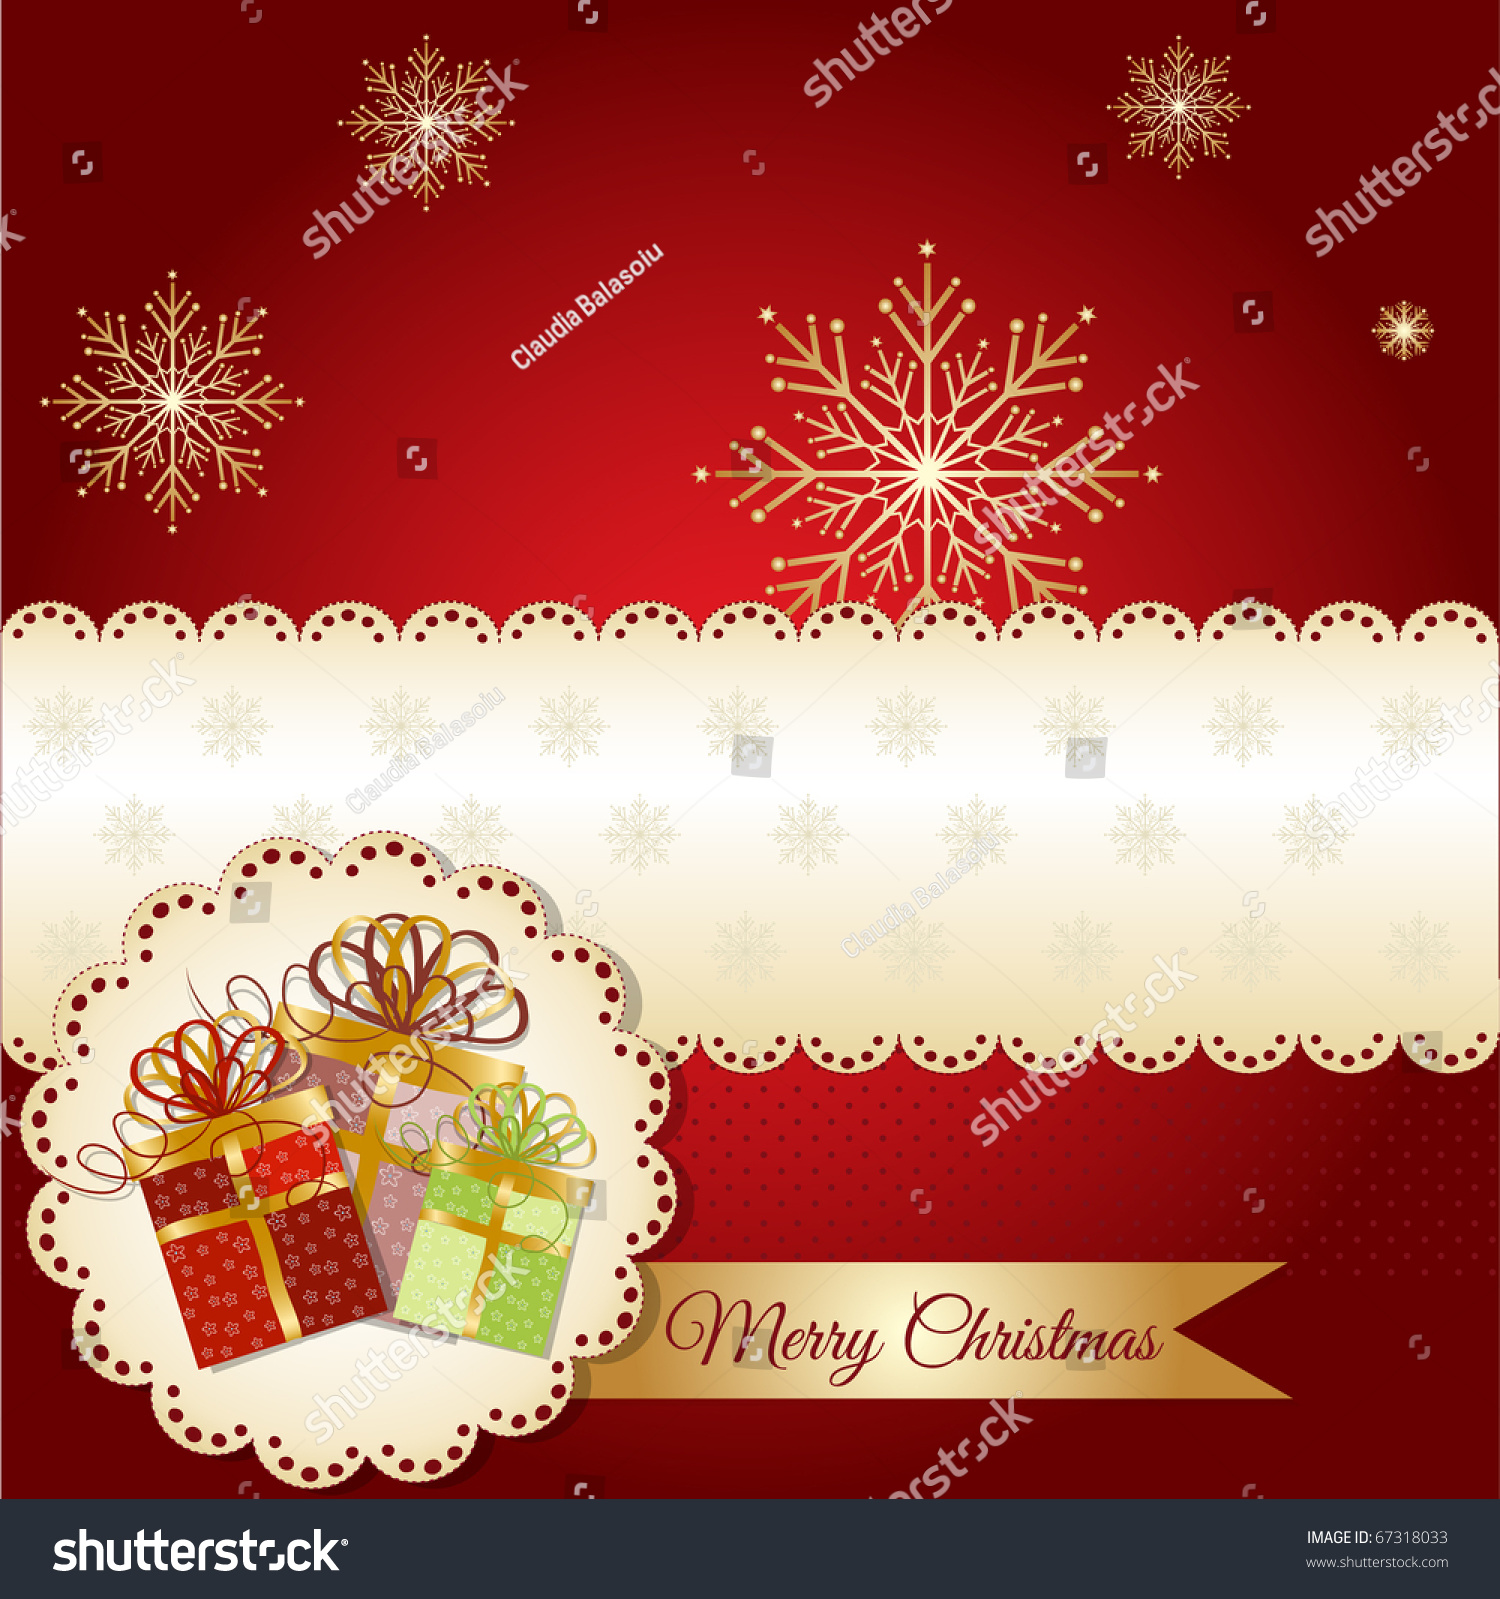 Christmas greetings card stock vector 67318033 shutterstock christmas greetings card kristyandbryce Image collections